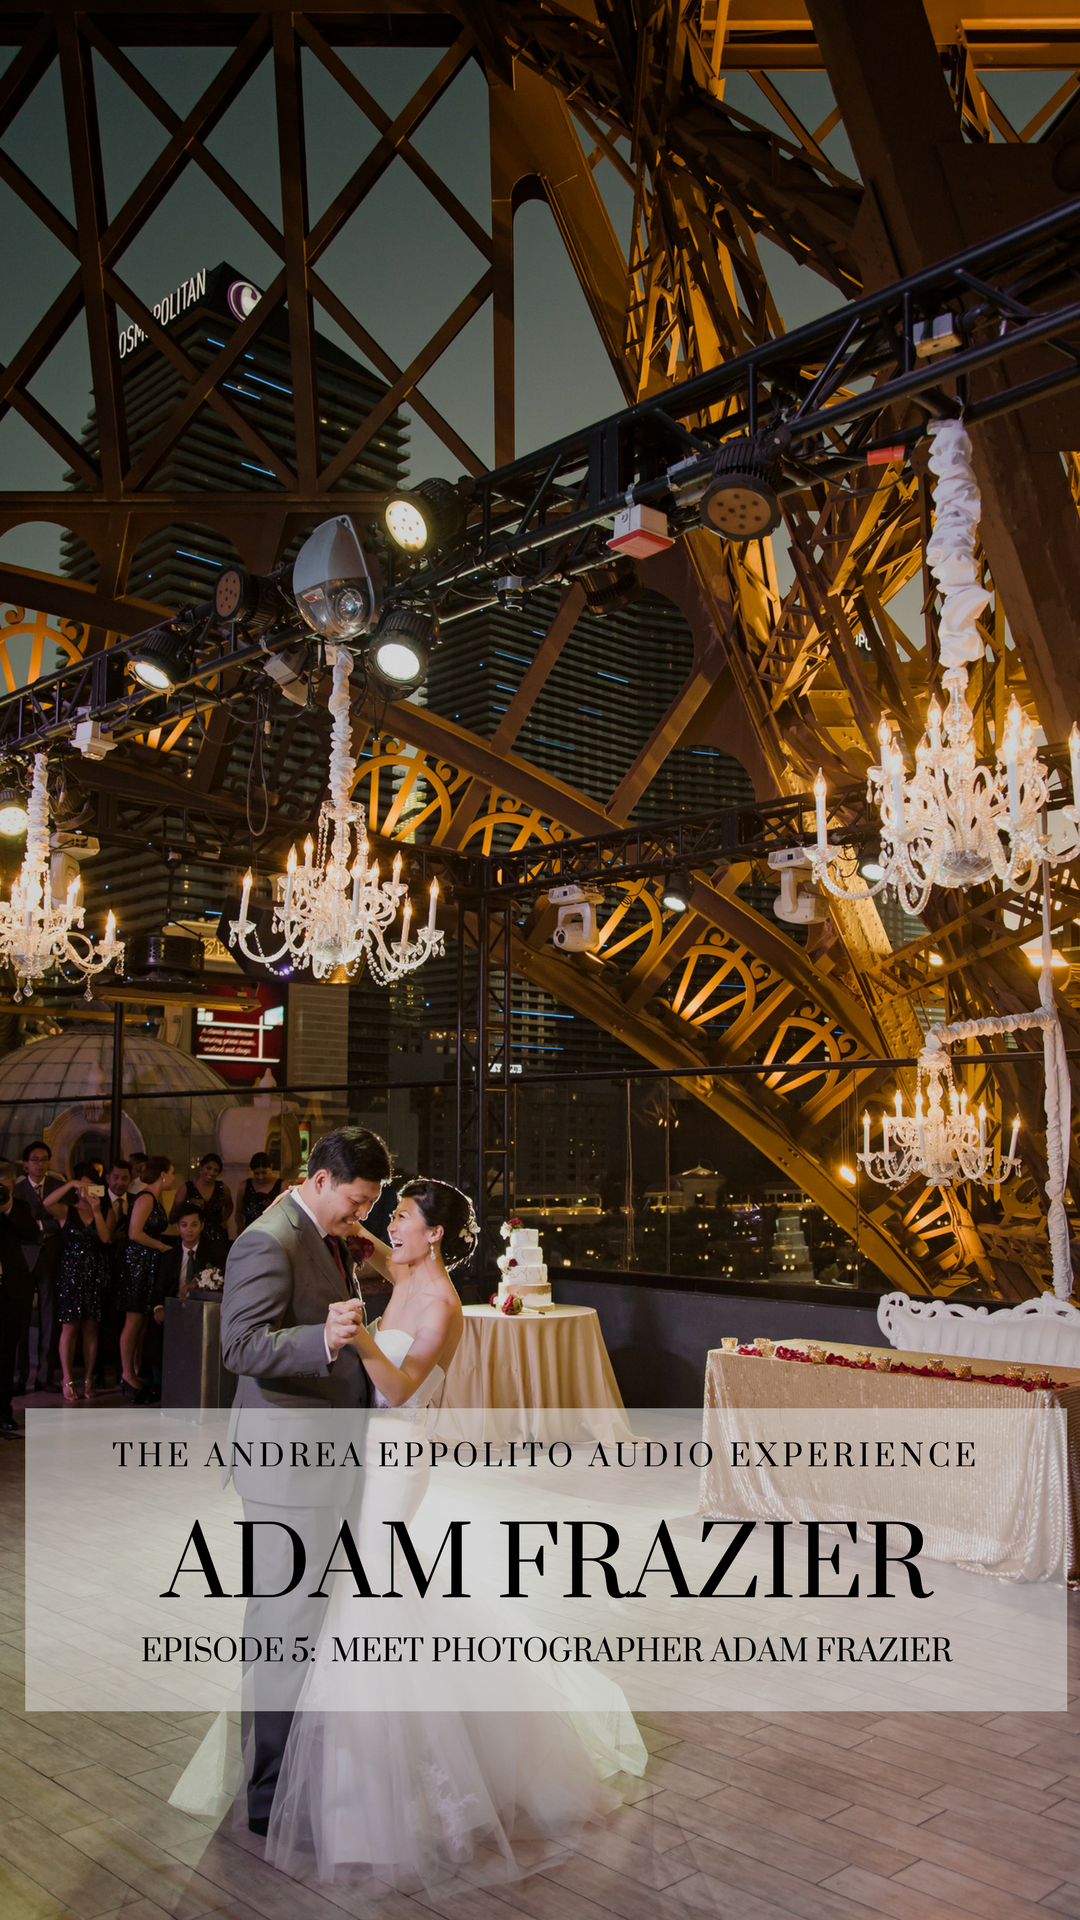 Podcast with Las Vegas Wedding Photographer Adam Frazier discussing things he wish couples knew.Las Vegas Wedding Planning Podcast. Andrea Eppolito hosts a podcast discussing life, luxury, and above all else...love.